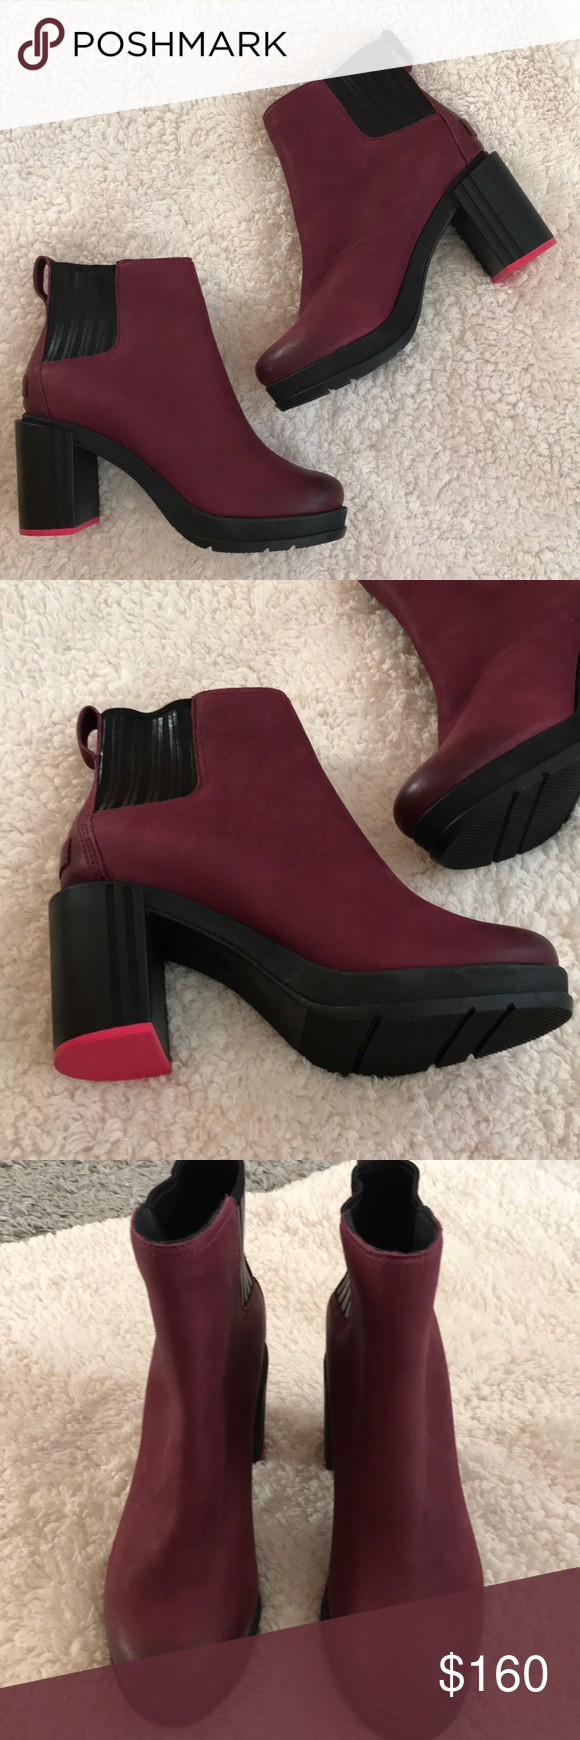 18195b3ca2 New Sorel Margo Chelsea Boot wine New. Sample used for advertising. Wine  color Classic style and slide-on fit come together in this foot-hugging  ankle boot ...